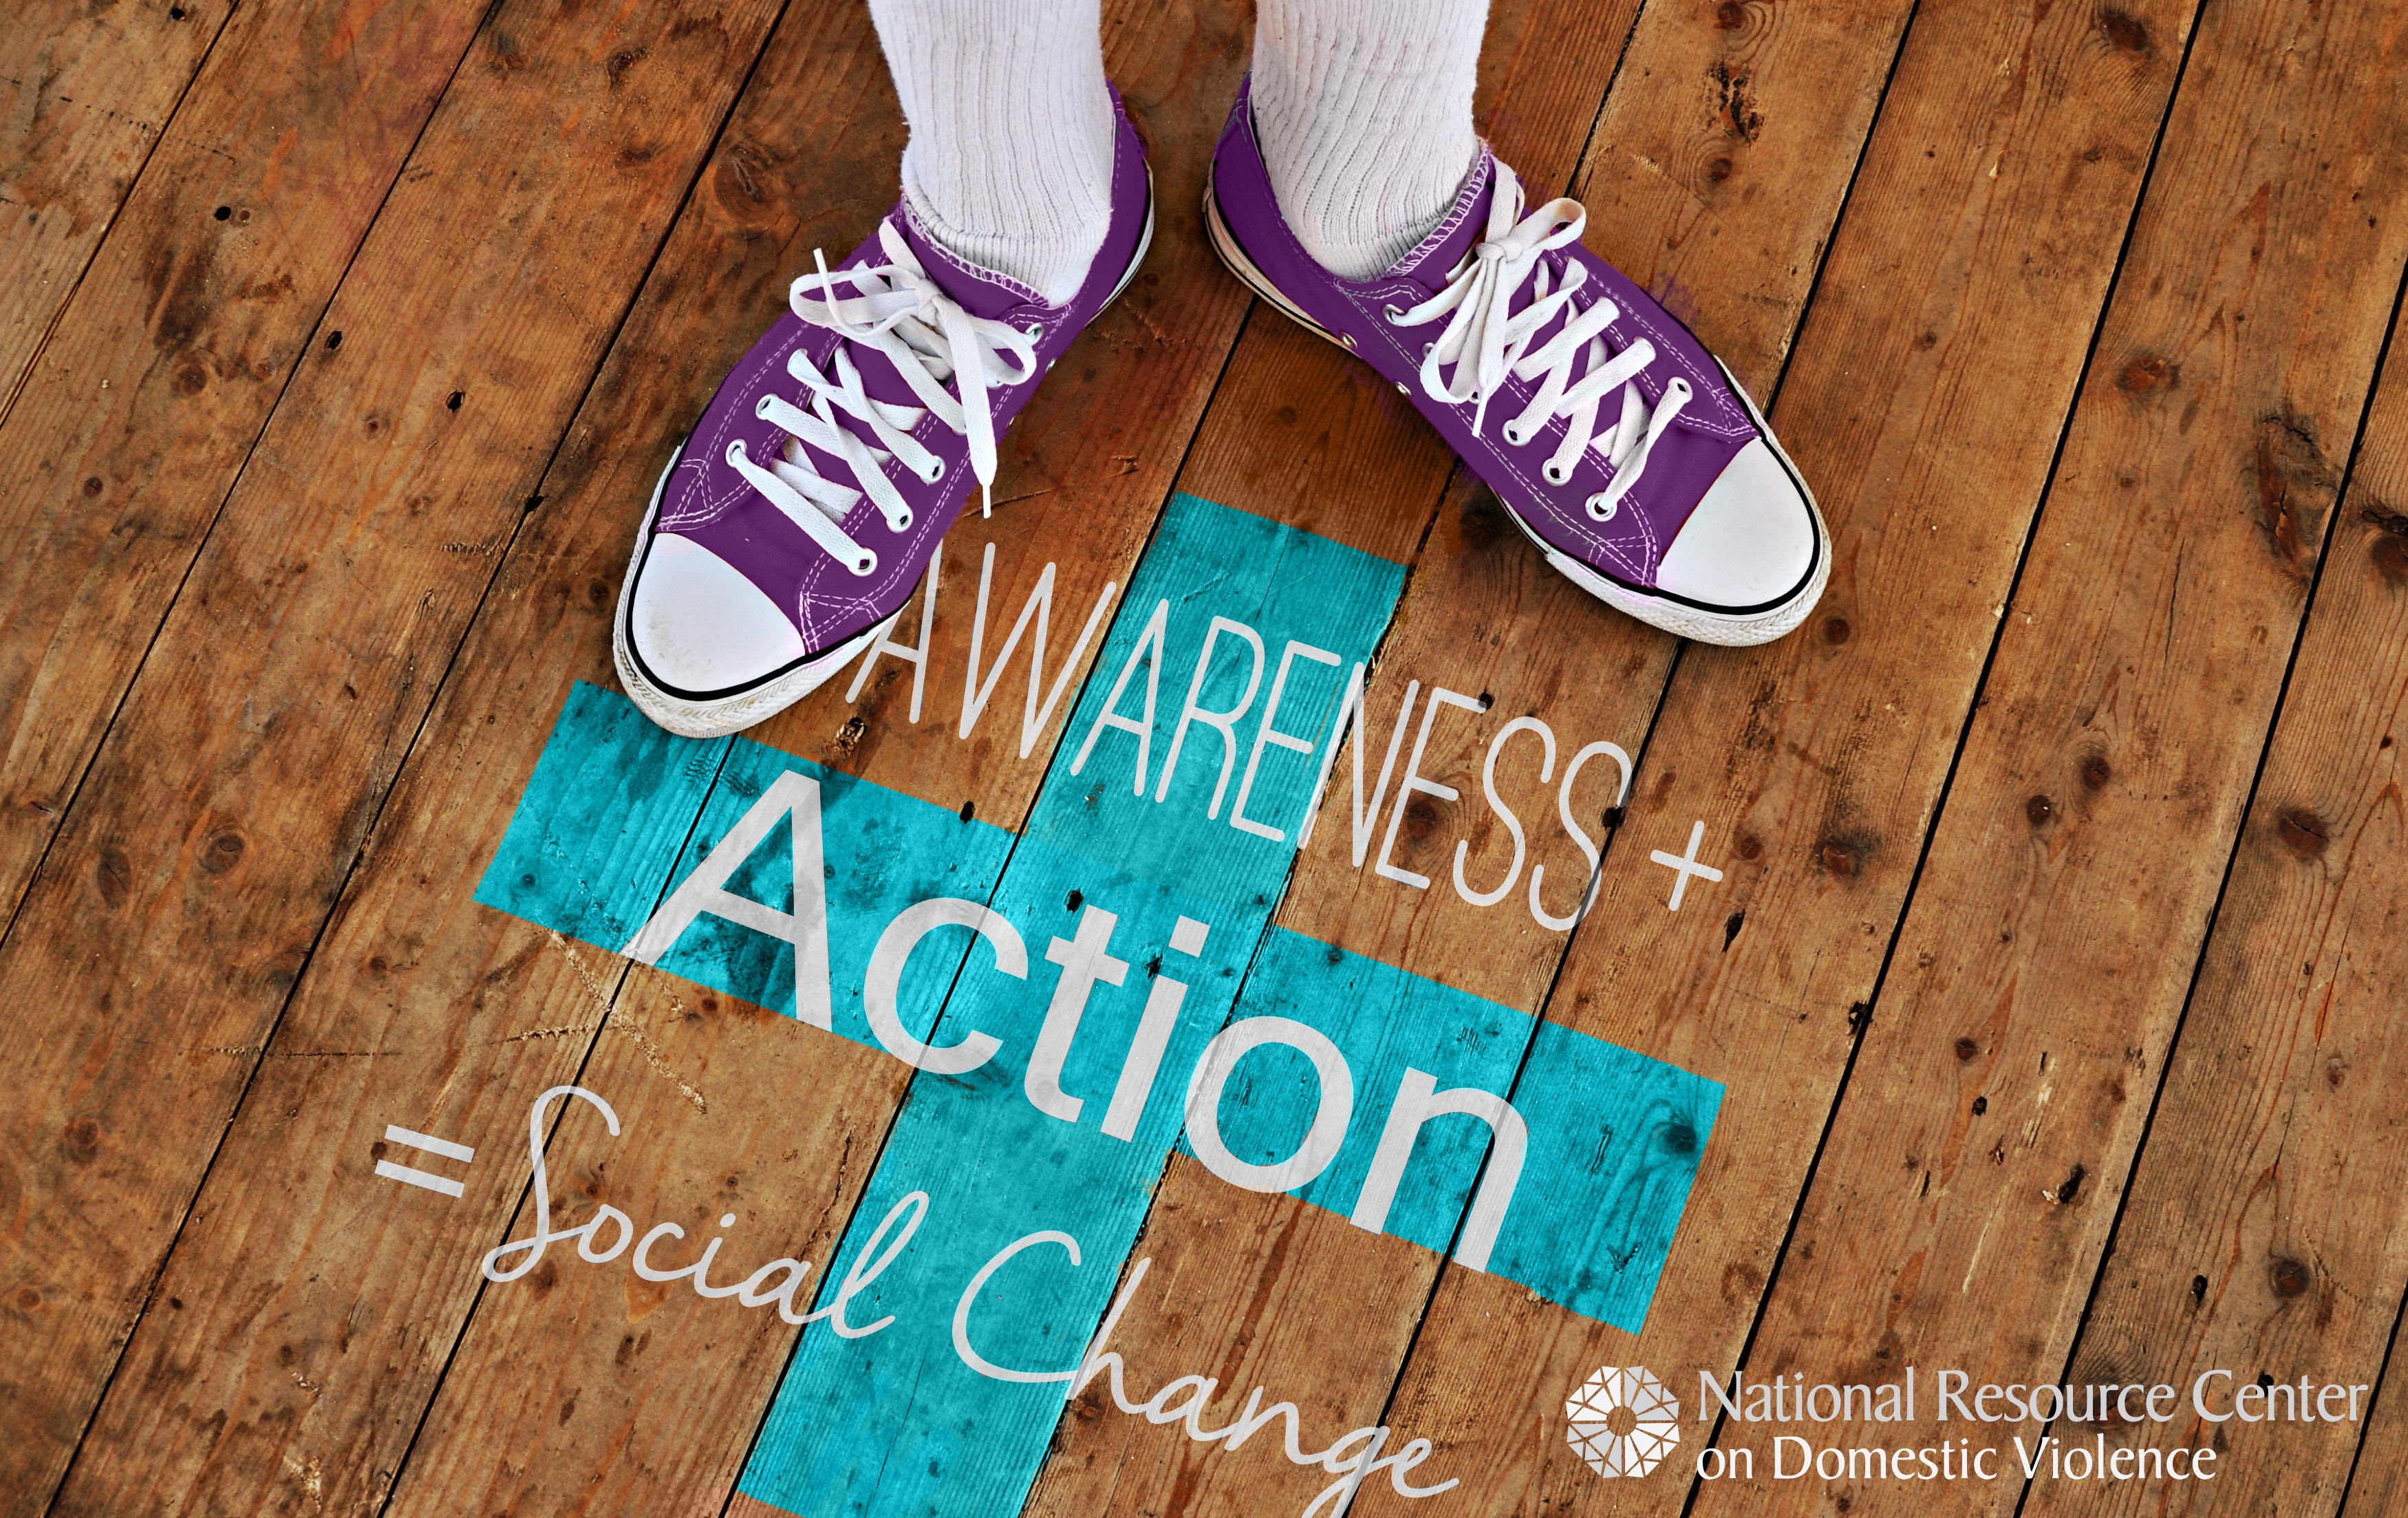 Image of feet on a floor with Awarebess + Action = Social Change logo printed on the floor